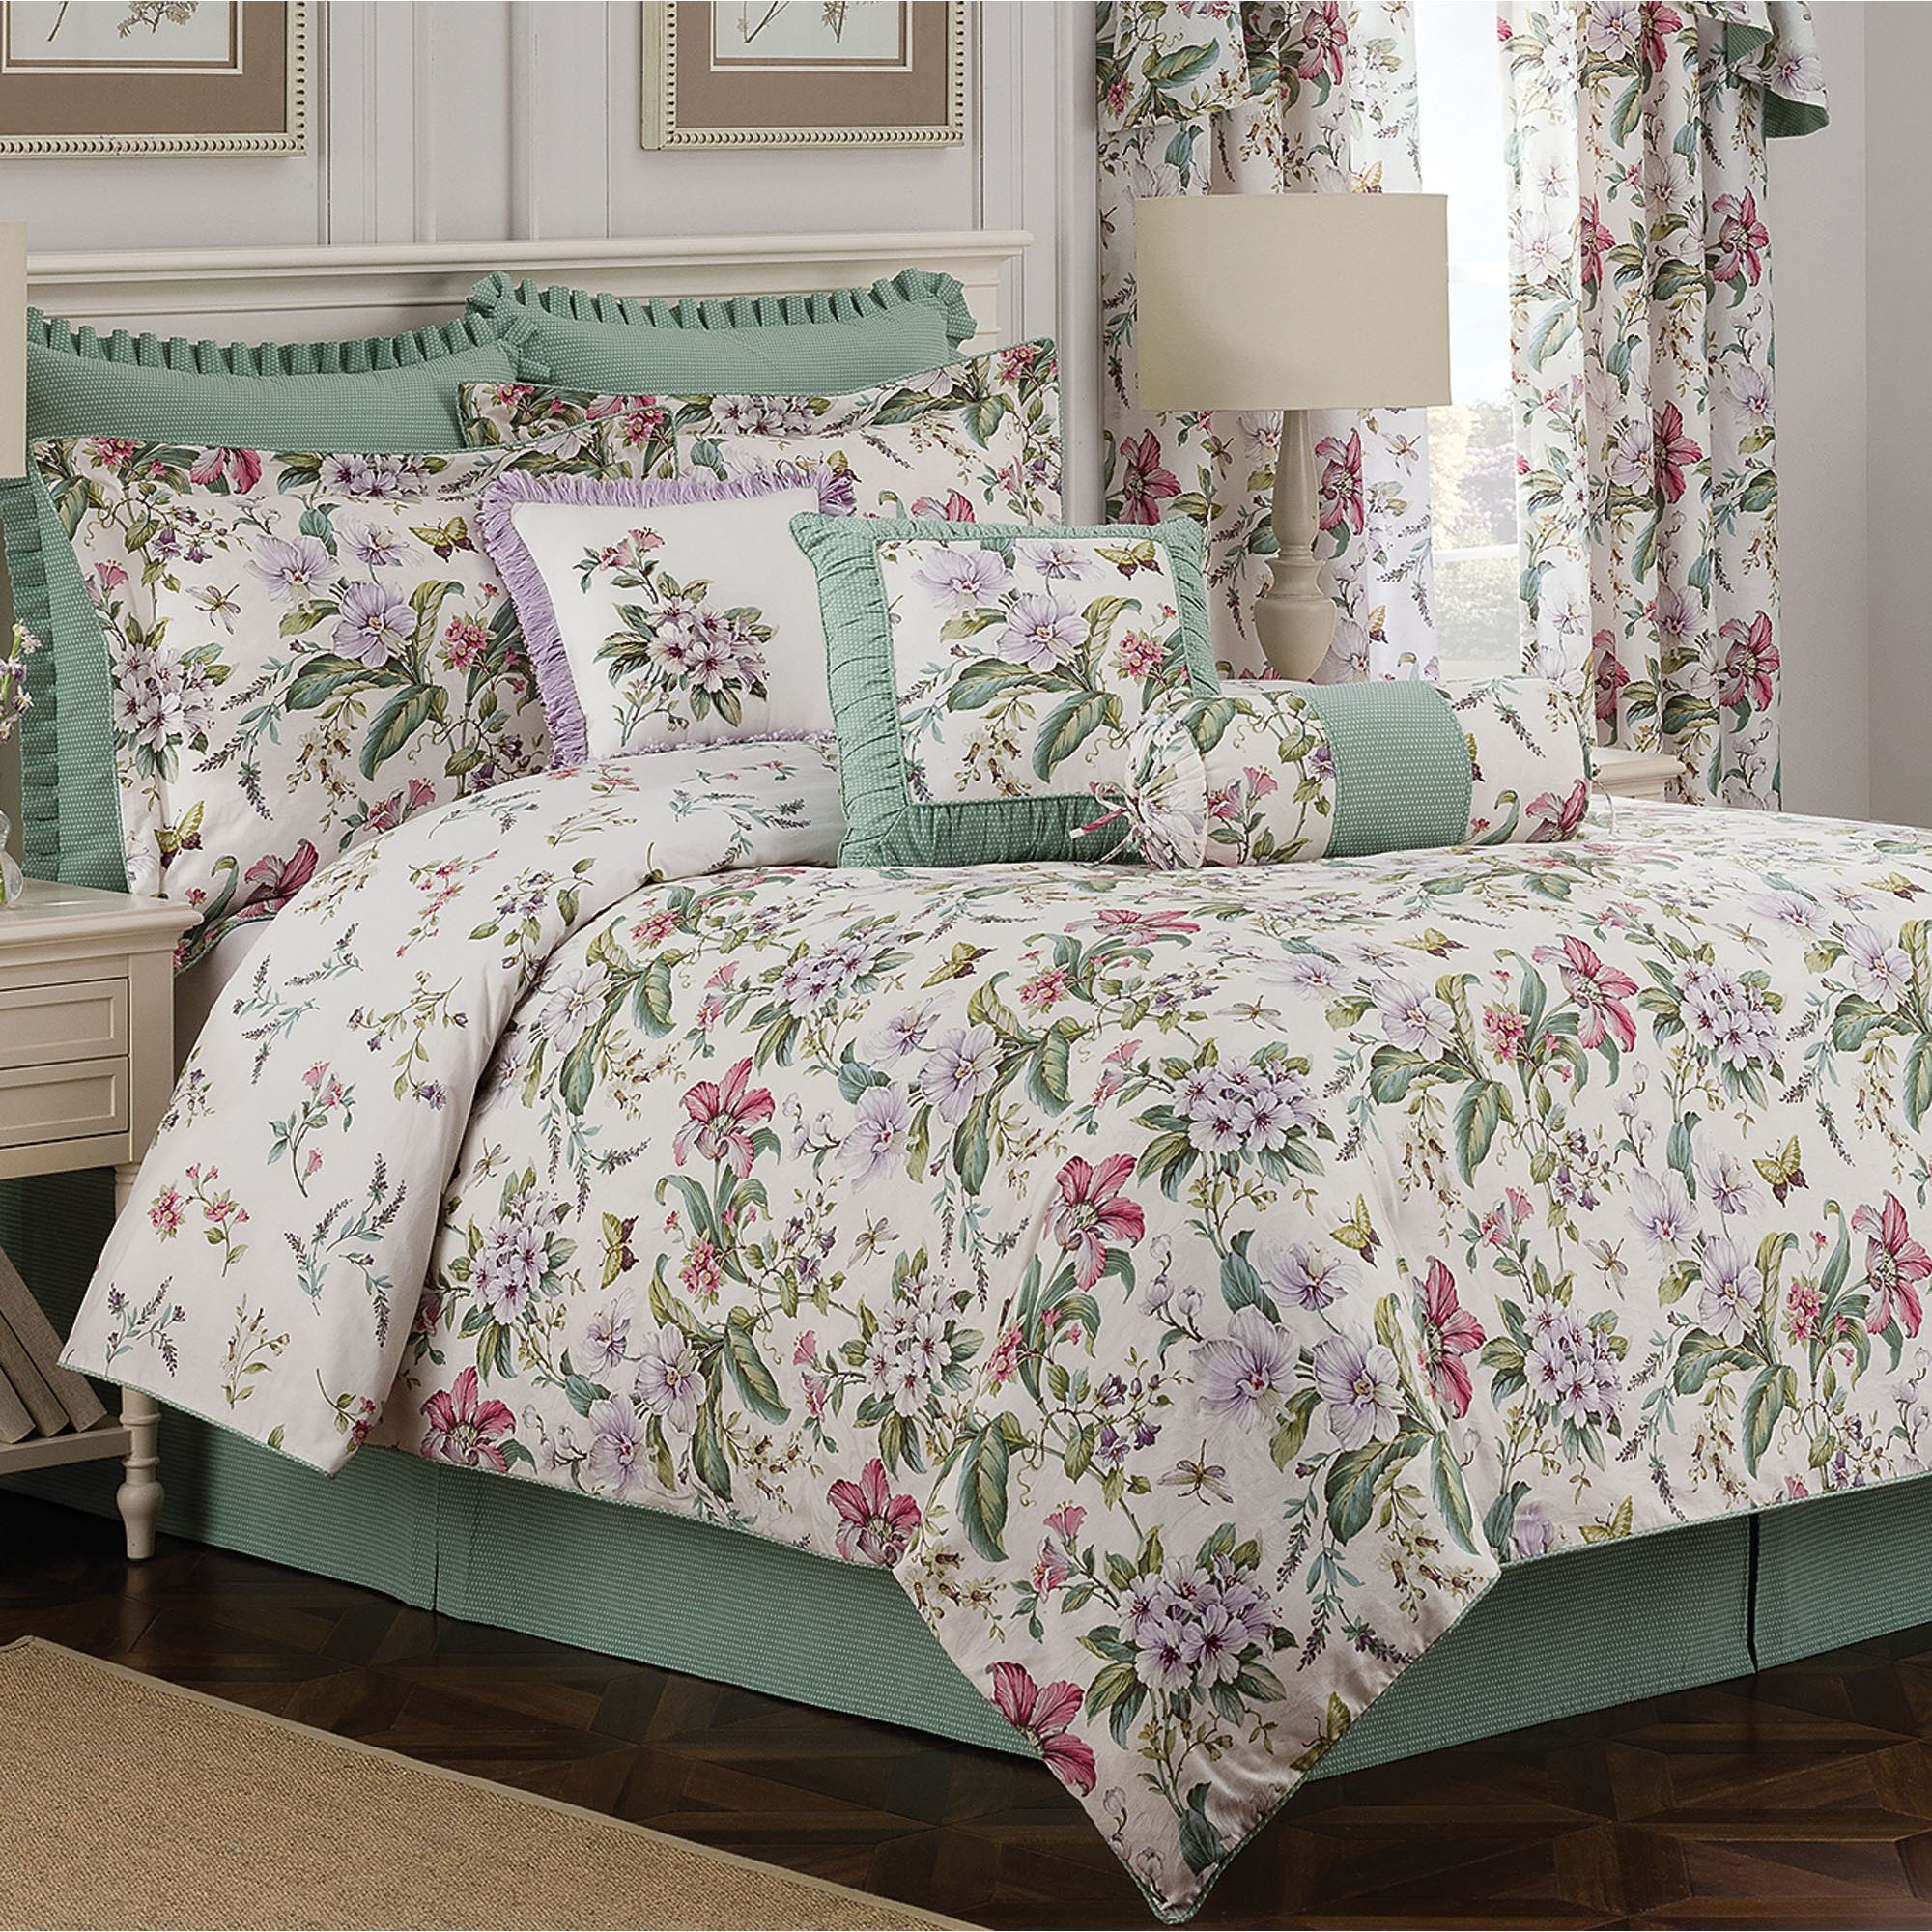 bedding buy taupe comforter sets stunning lenox meadow size butterfly bed queen grey decoration pink full of set